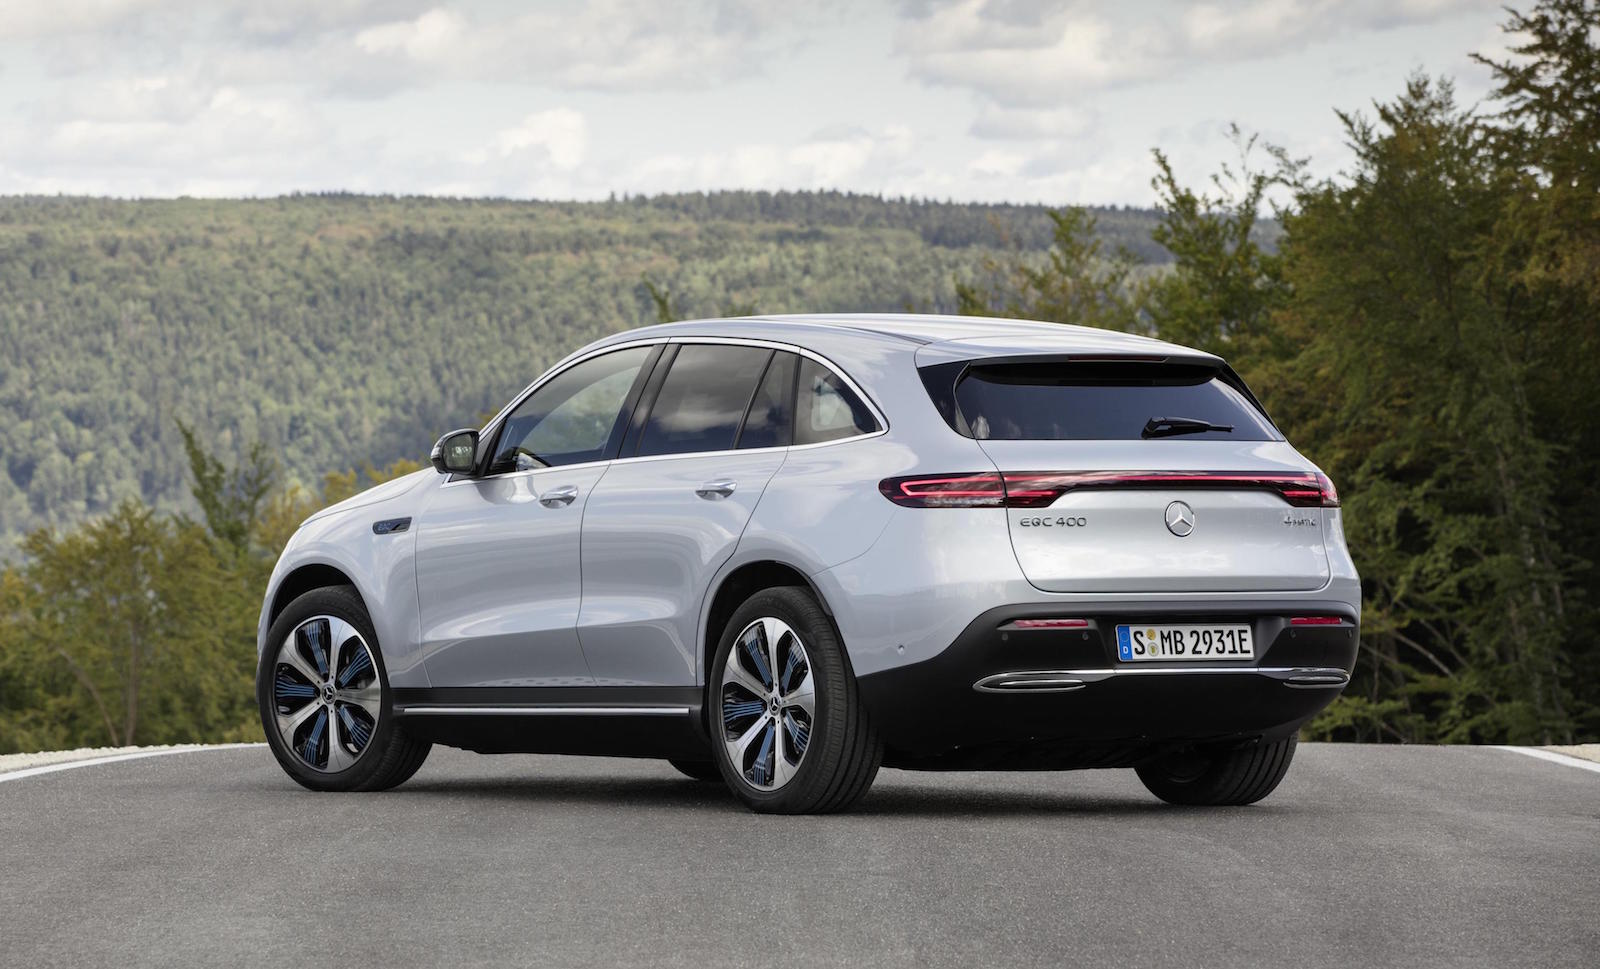 Mercedes-Benz EQC All-Electric Vehicle Has a Range of More ...